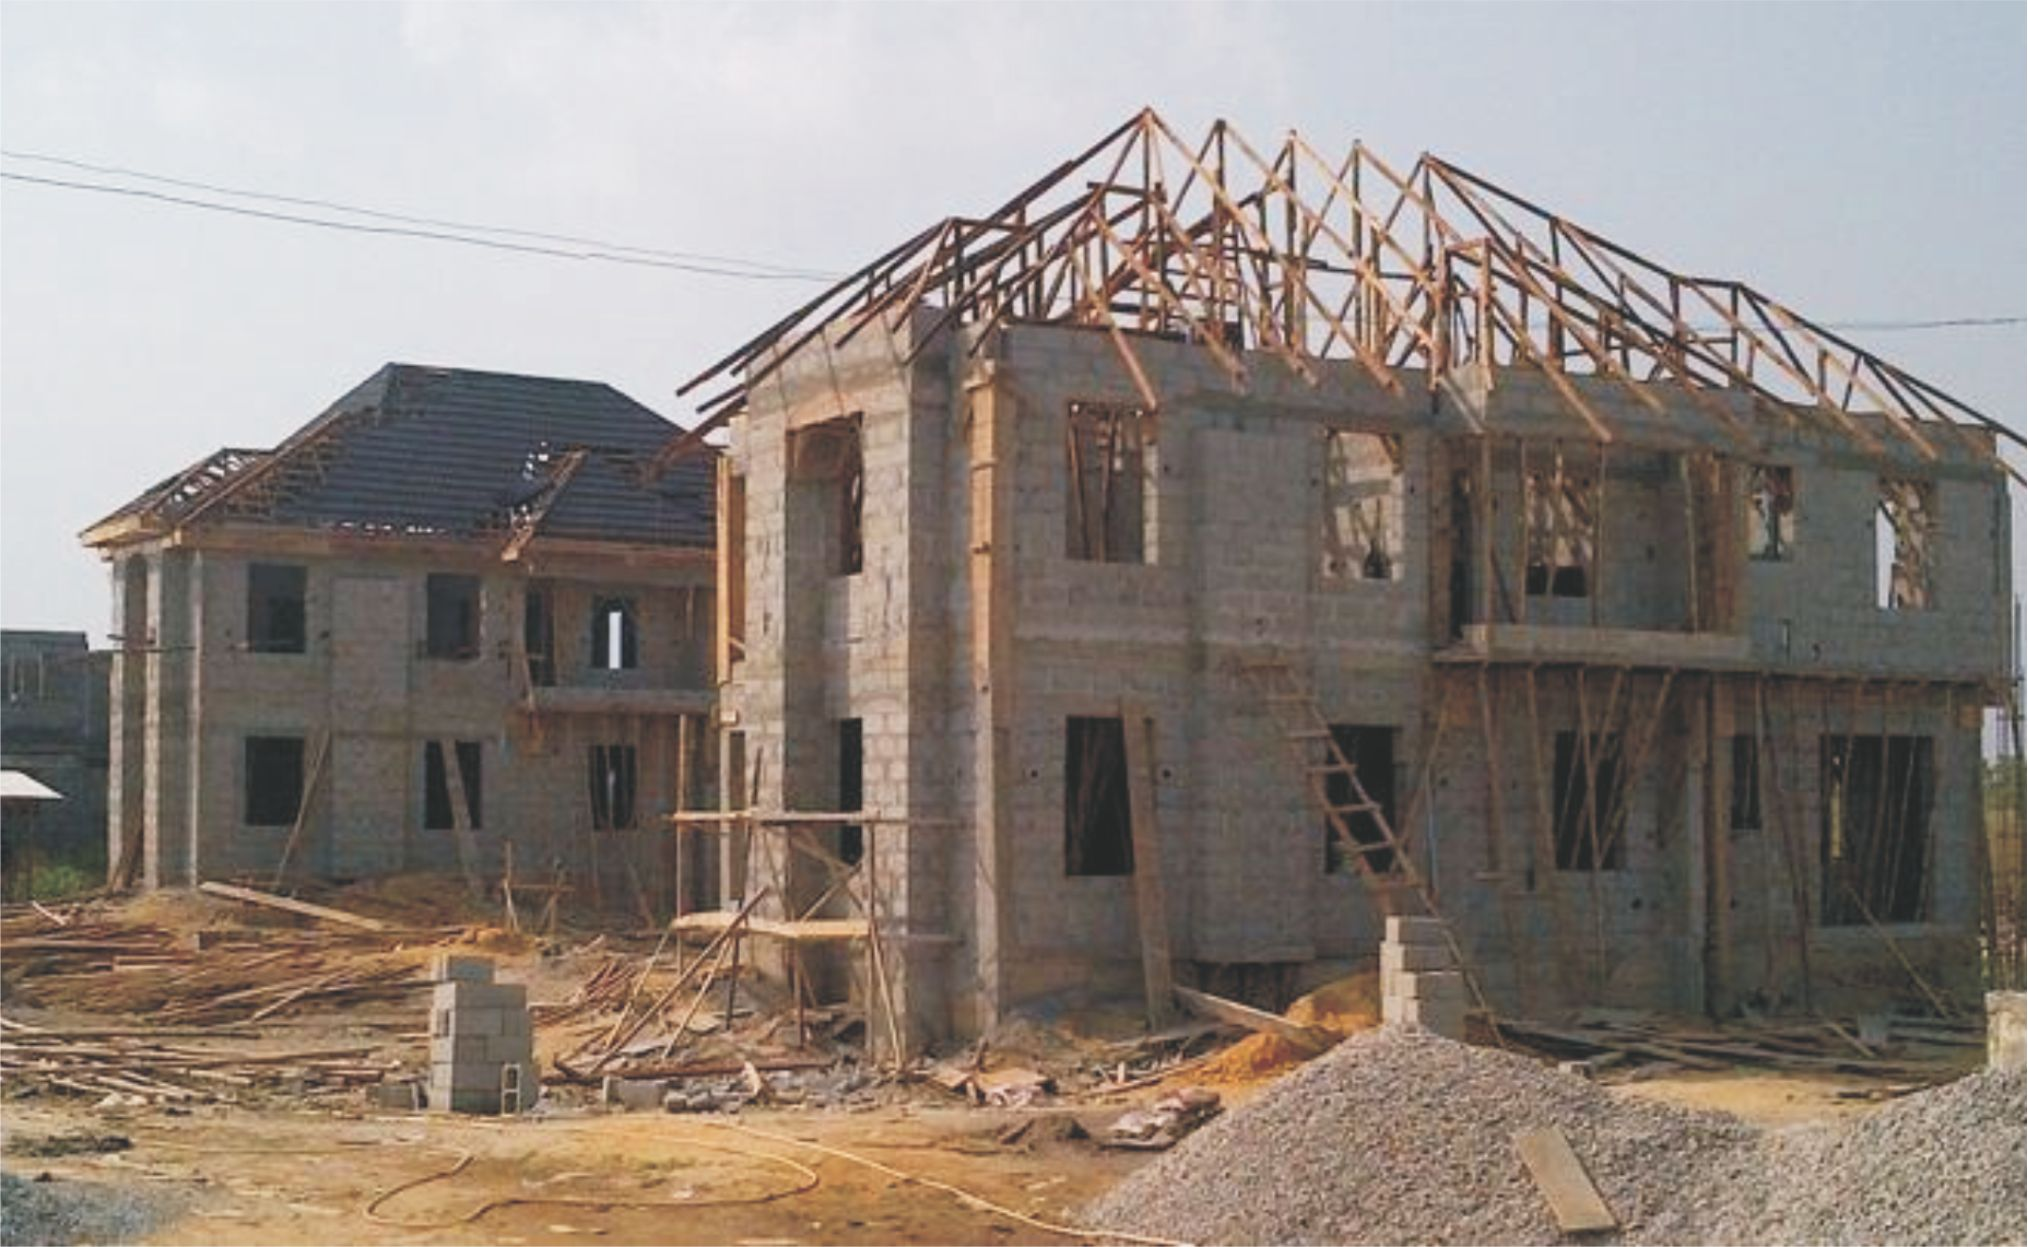 Home Building Forum The Cost Of Building A House In Nigeria | Jackobian Forums